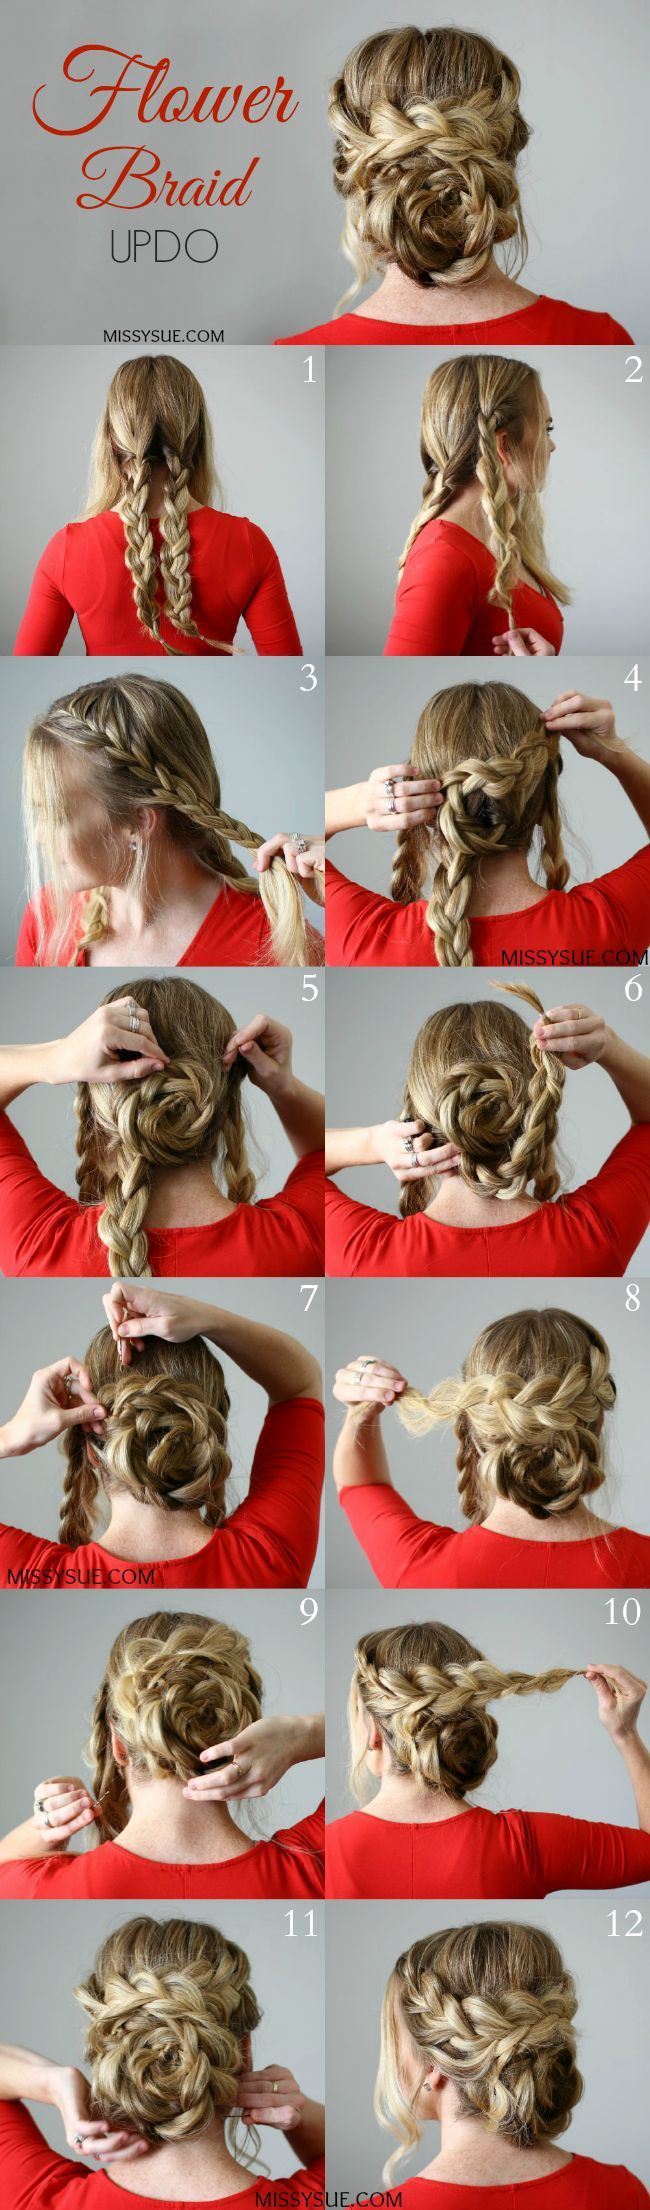 Best Flower Braids Ideas On Pinterest Low Ponytail - Braid diy pinterest